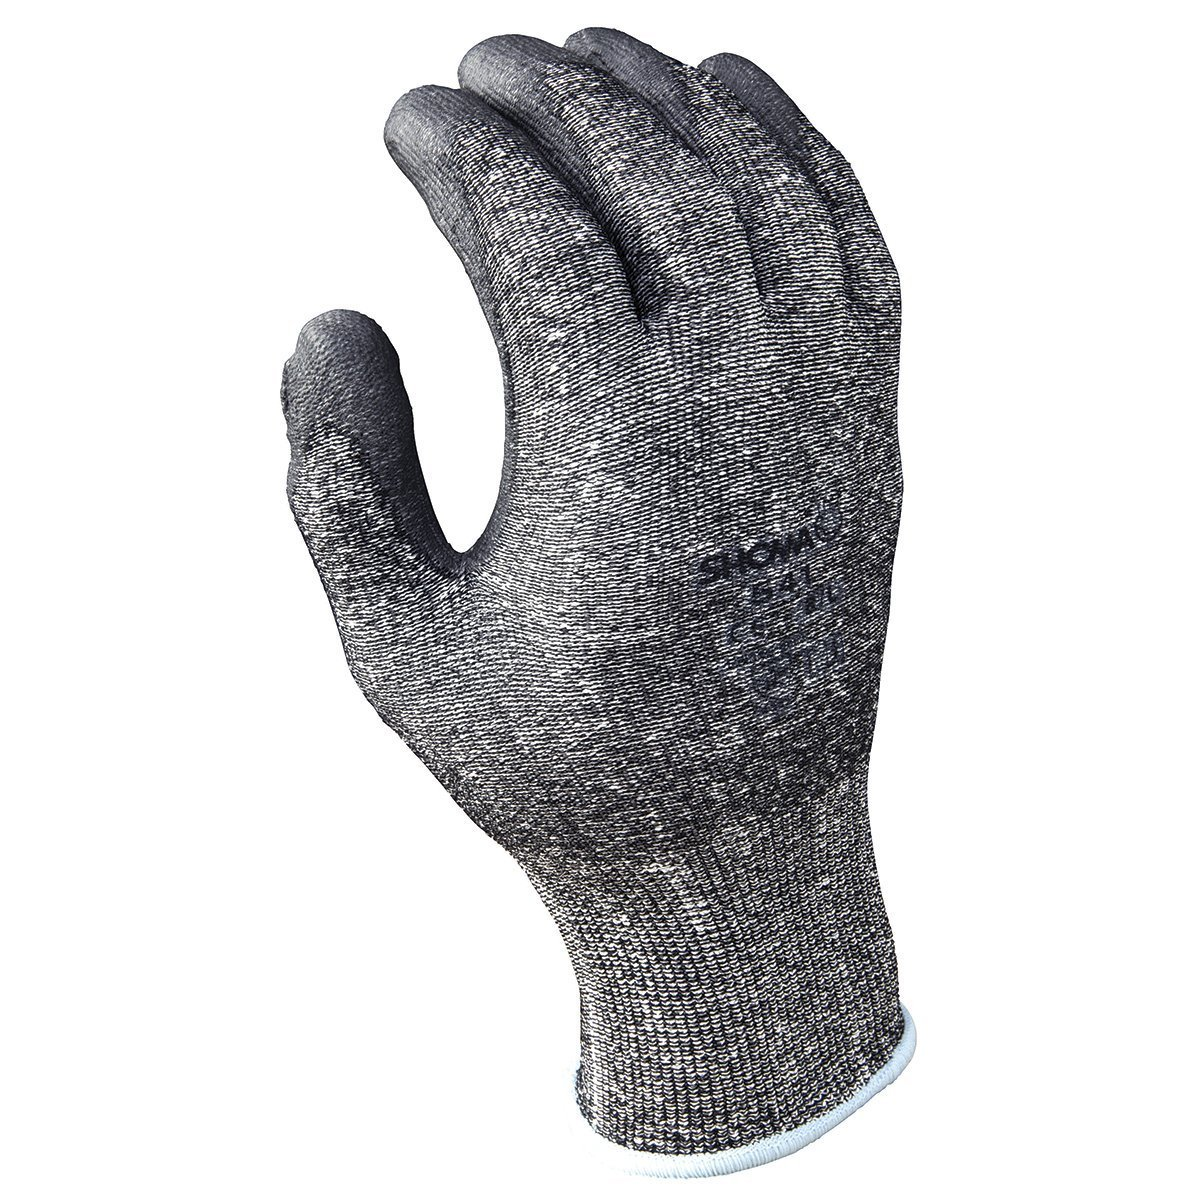 SHOWA Best® Glove Size 7 SHOWA® 541 13 Gauge Cut Resistant Gray Polyurethane Dipped Palm Coated Work Gloves With Light Gray Seamless Dyneema® And High Performance Polyethylene Knit Liner And Elastic Wrist